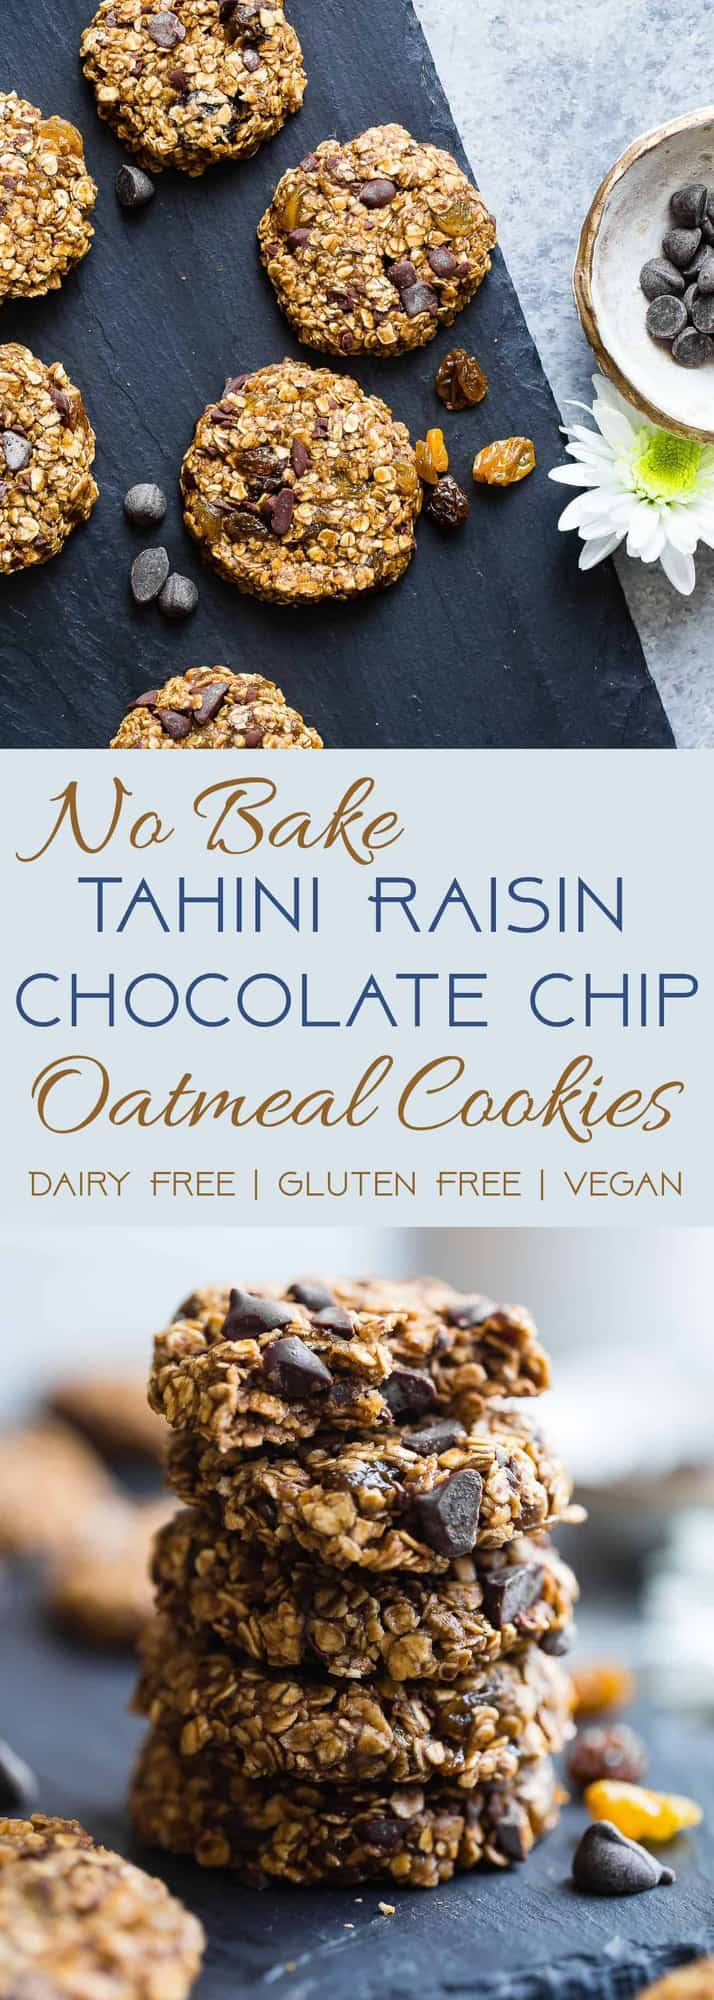 No-Bake Vegan Oatmeal Raisin, Chocolate Chip, and Tahini Cookies - These EASY, no bake oatmeal cookies have a surprise tahini twist, chocolate and notes of spicy cardamon and chewy golden raisins! A healthy, gluten/dairy/egg free treat for only 110 calories! | #Foodfaithfitness | #Vegan #NoBake #Healthy #ChocolateChip #Glutenfree